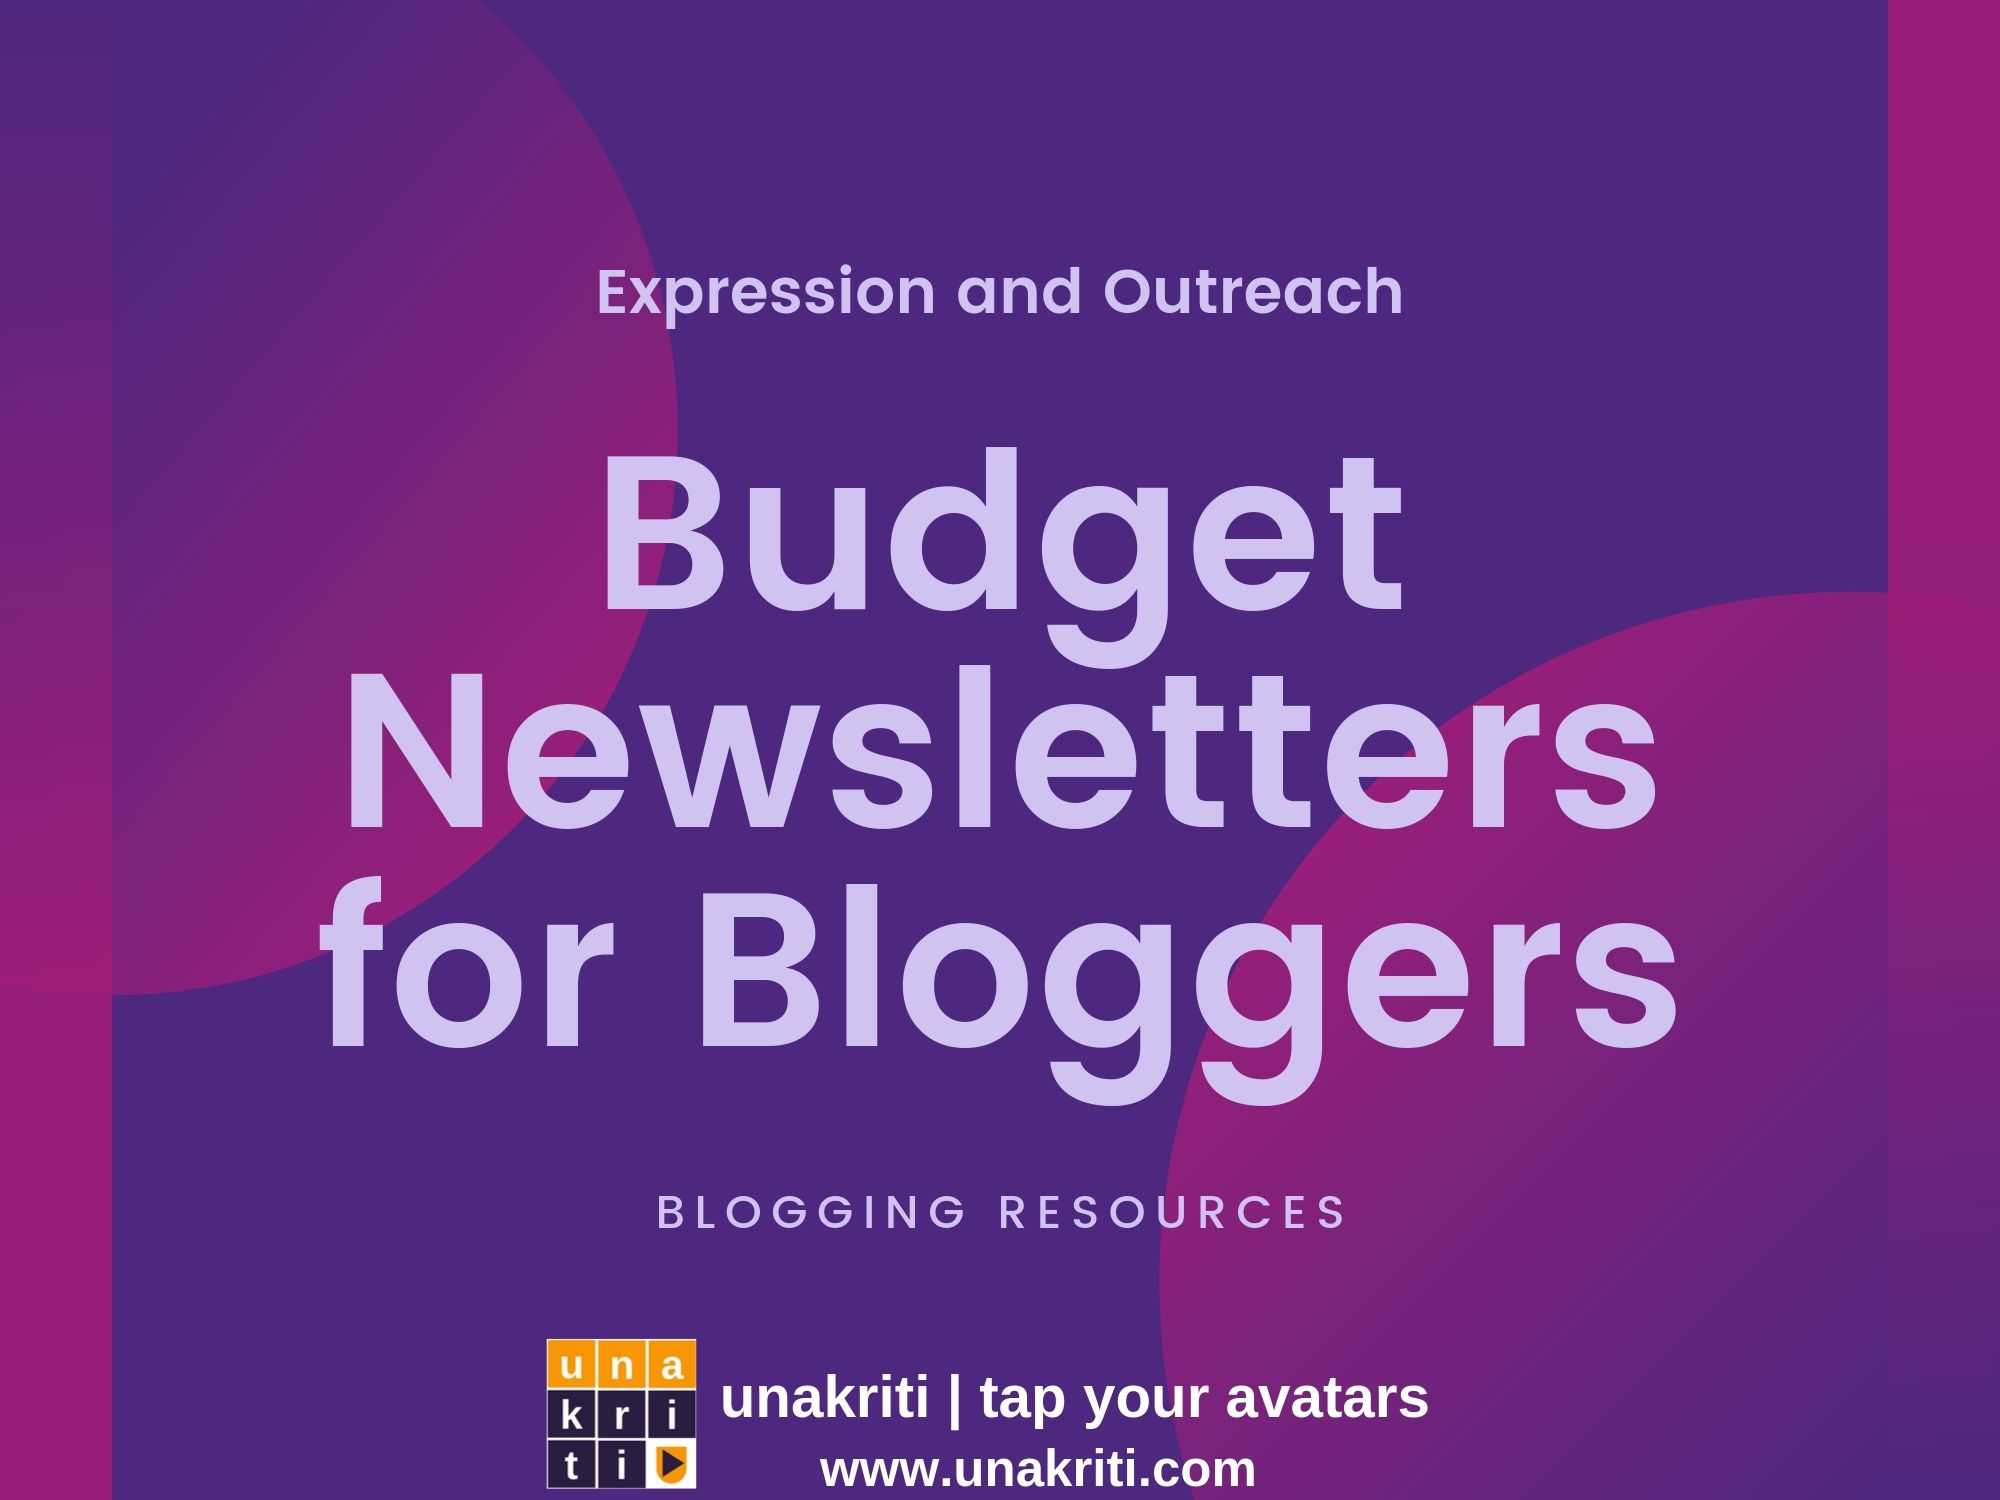 Are there affordable newsletter options?